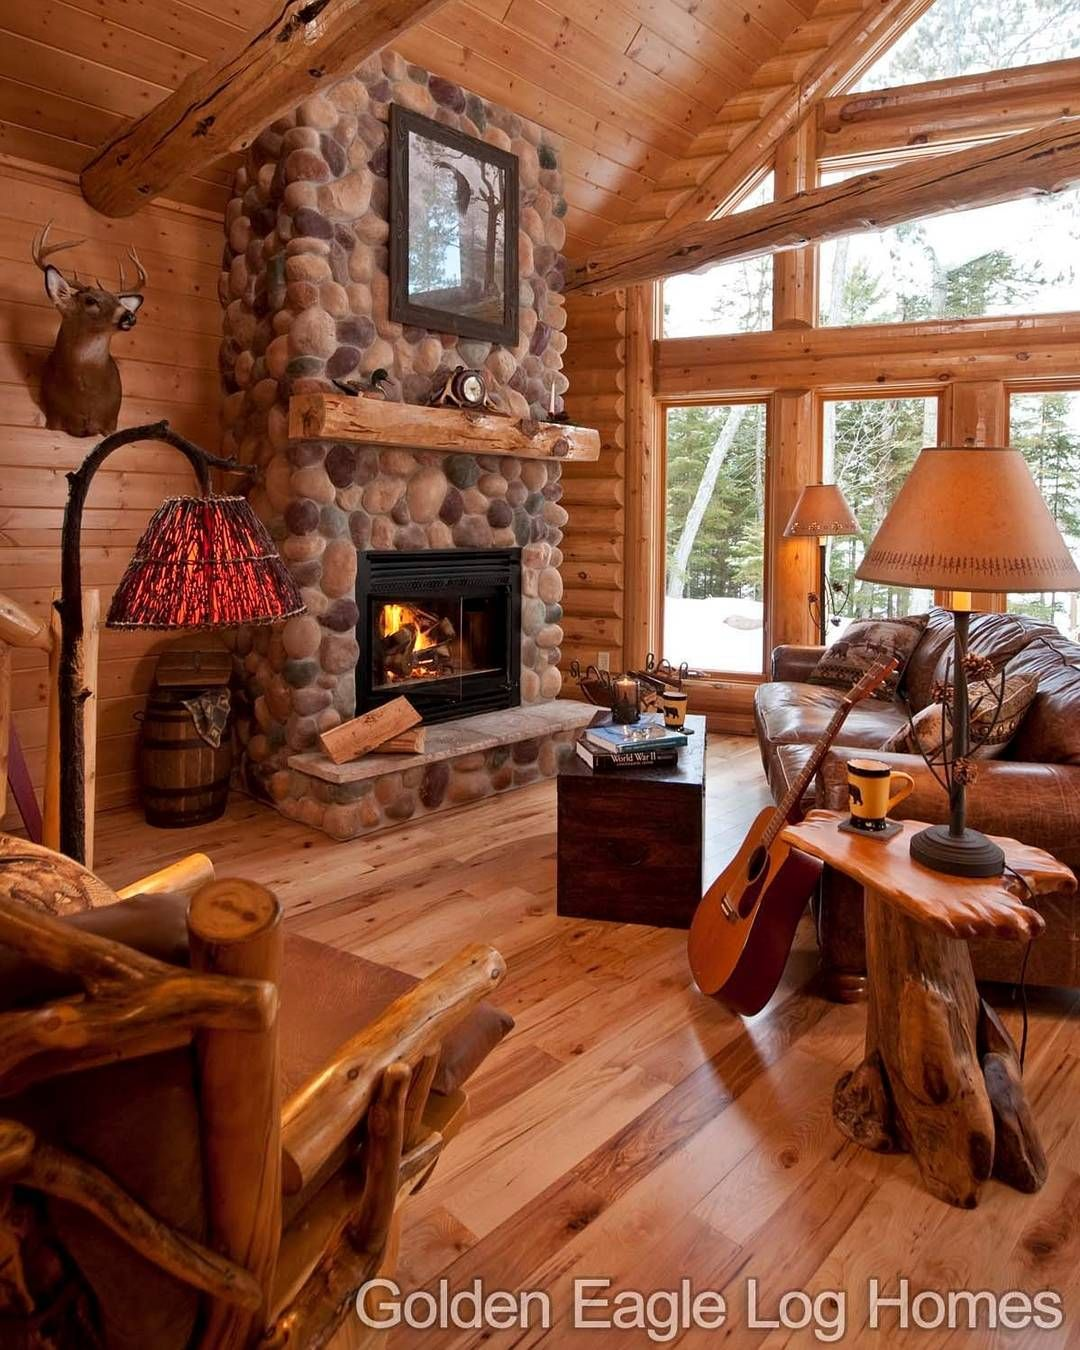 Golden Eagle Log Homes — Beautiful fireplace and wood